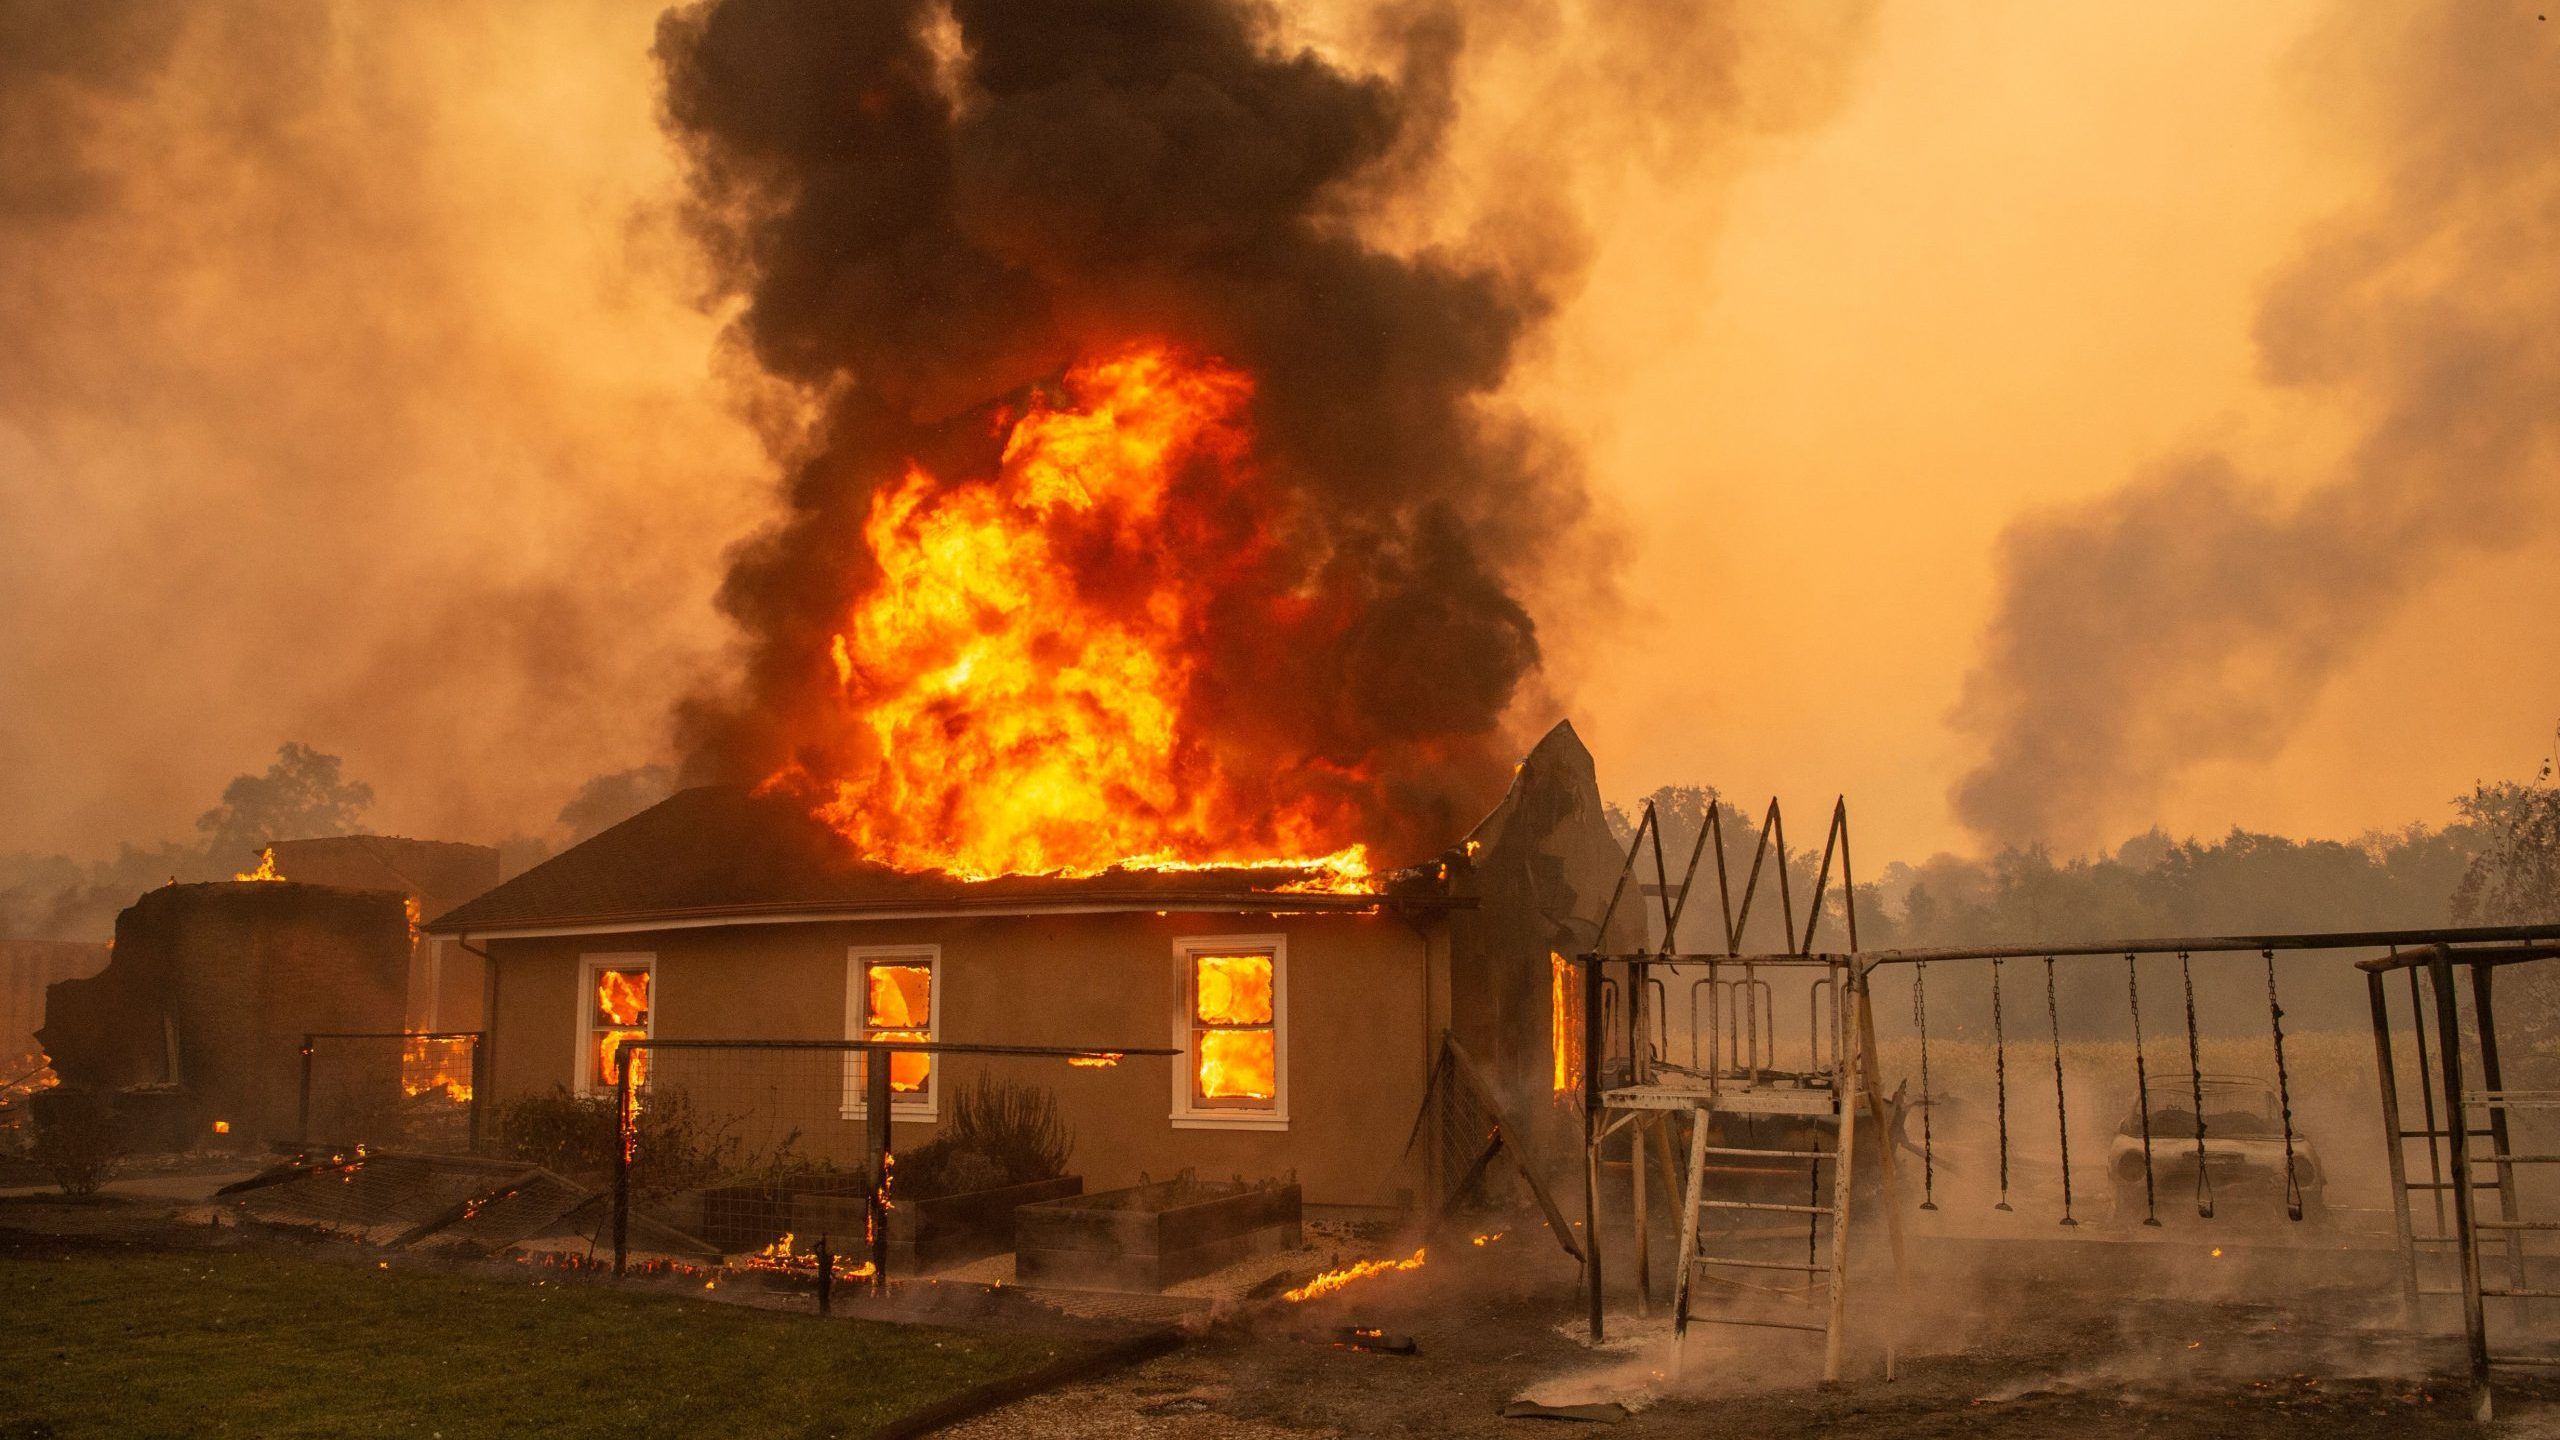 A home burns at a vineyard near Geyserville during the Kincade Fire on Oct. 24, 2019. (Credit: Josh Edelson / AFP / Getty Images)